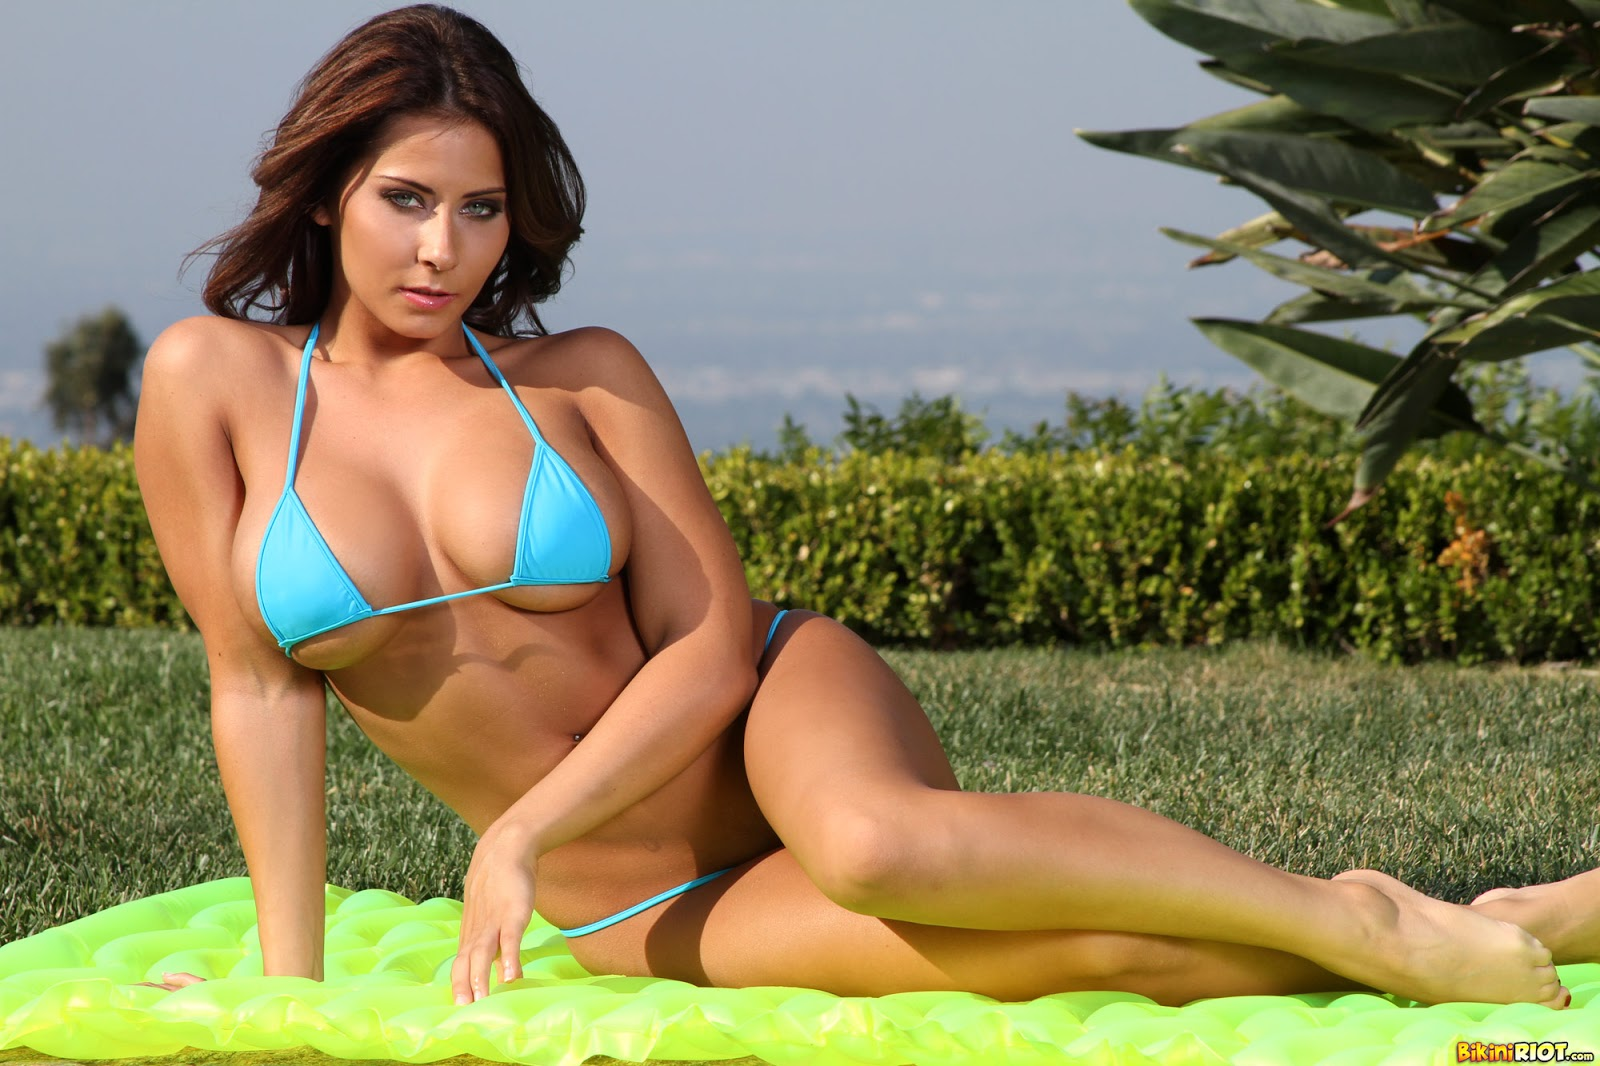 Celebrities Entertainment - Everything About Celebrities: Madison Ivy Sexy New Blue Bikini ...